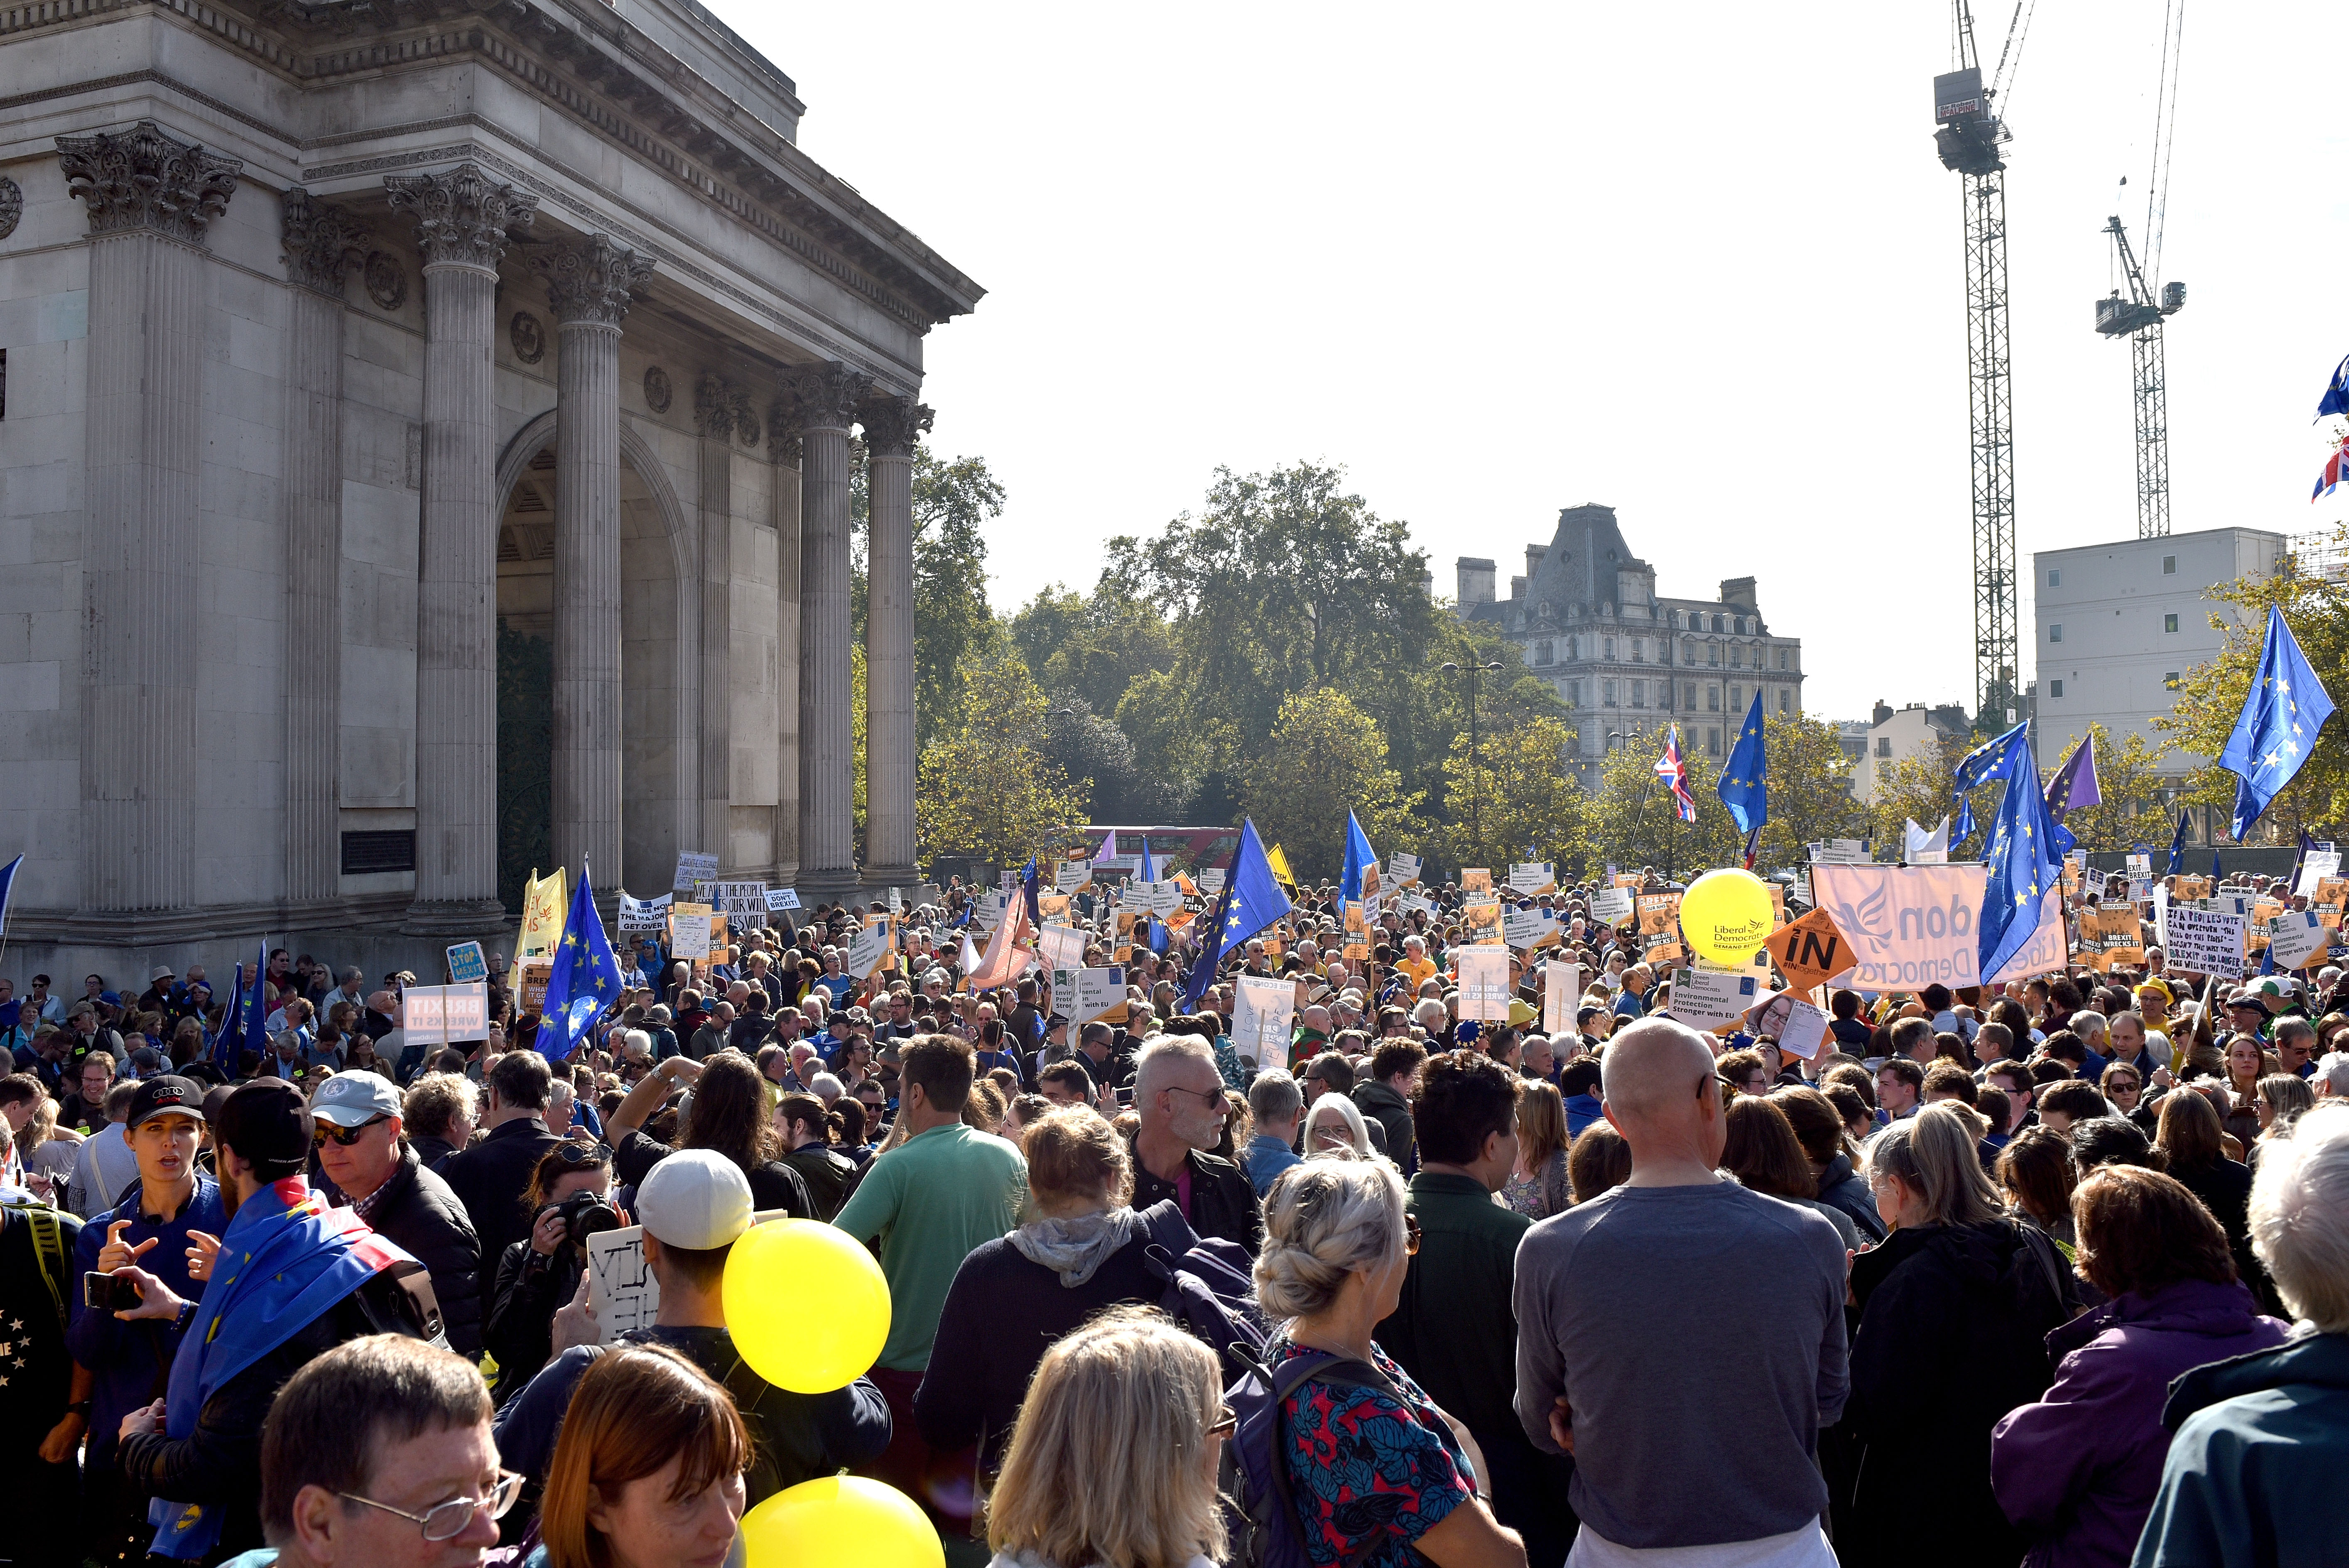 People gather in Hyde Park for a march to demand a people's vote against Brexit on October 20, 2018 in London, England. More than six hundred thousand people march from Park Lane to Parliament Square in what is said to be the largest public protest against Brexit so far. The march is to demand a People's Vote on the final Brexit deal amid growing support from MPs from all the main political parties for a final say referendum.